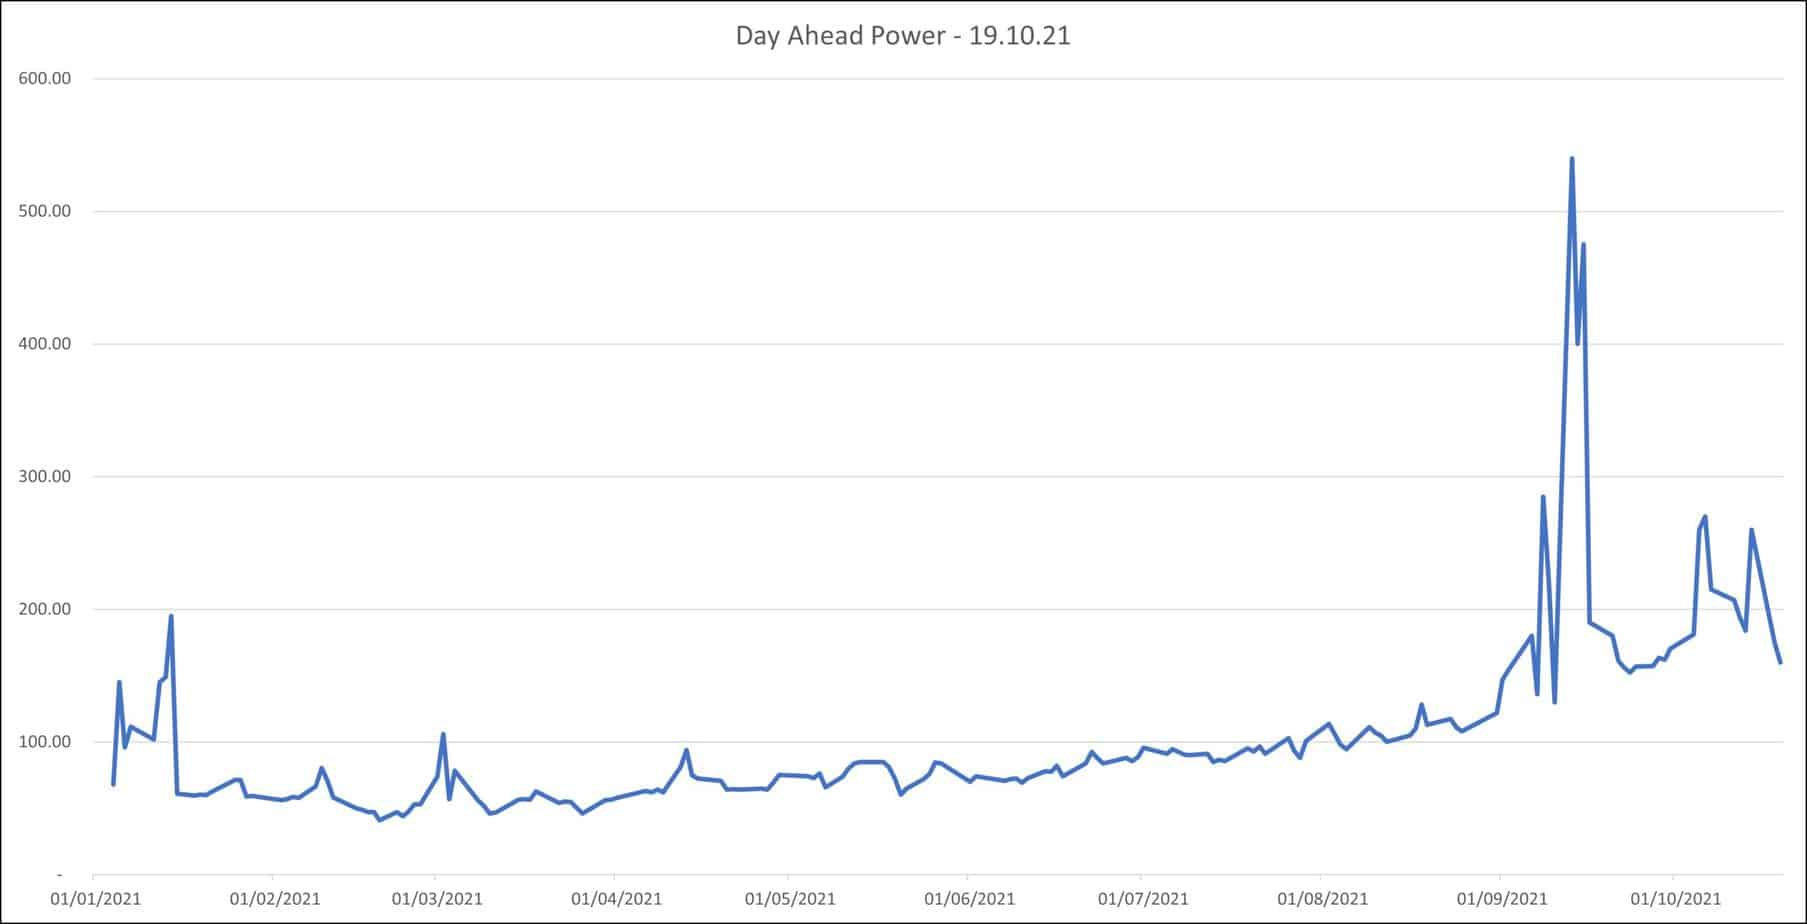 day ahead electricity prices 19.10.21